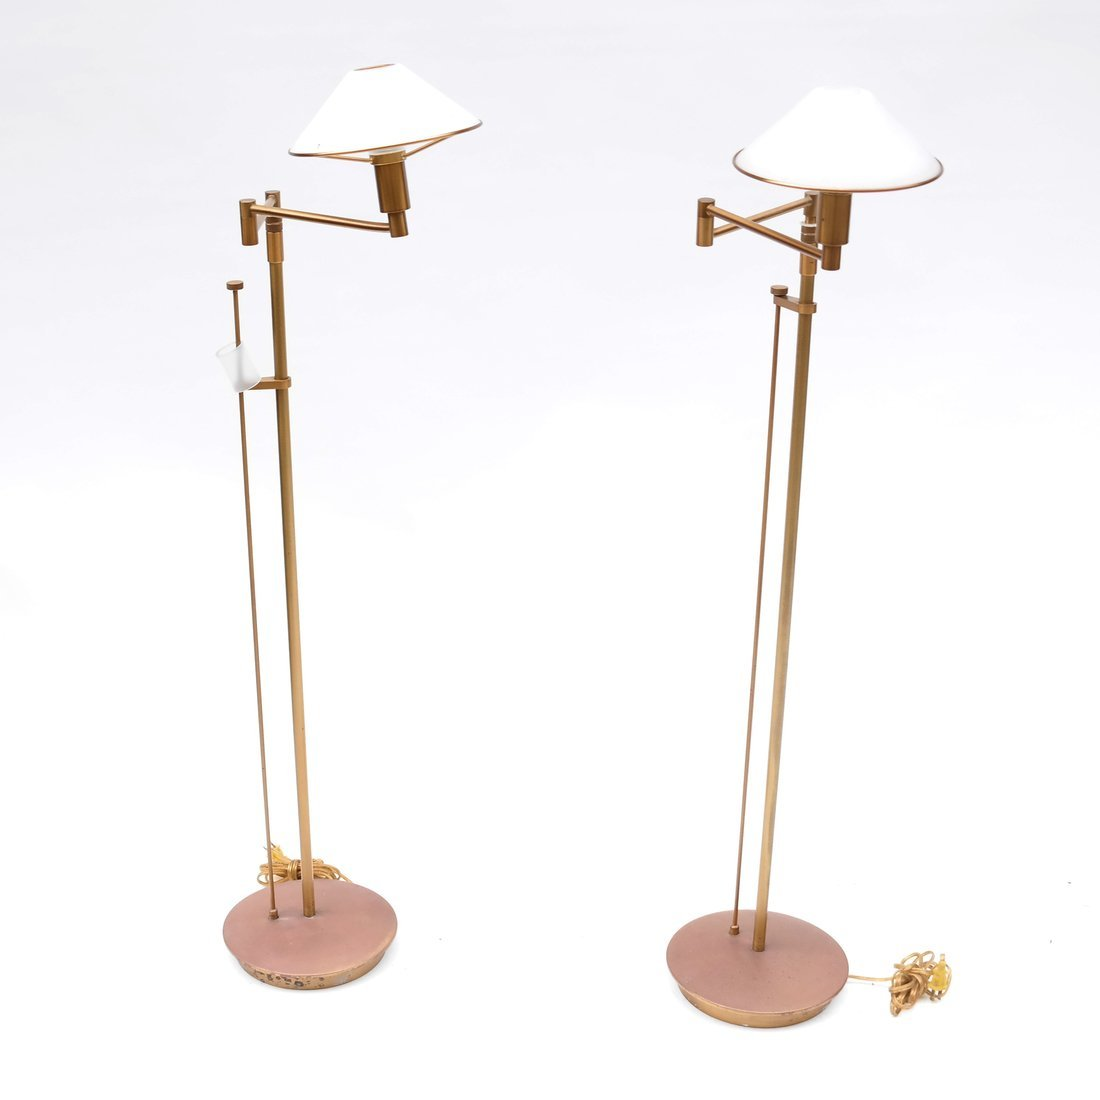 Pair of Modern Swing Arm Floor Lamps